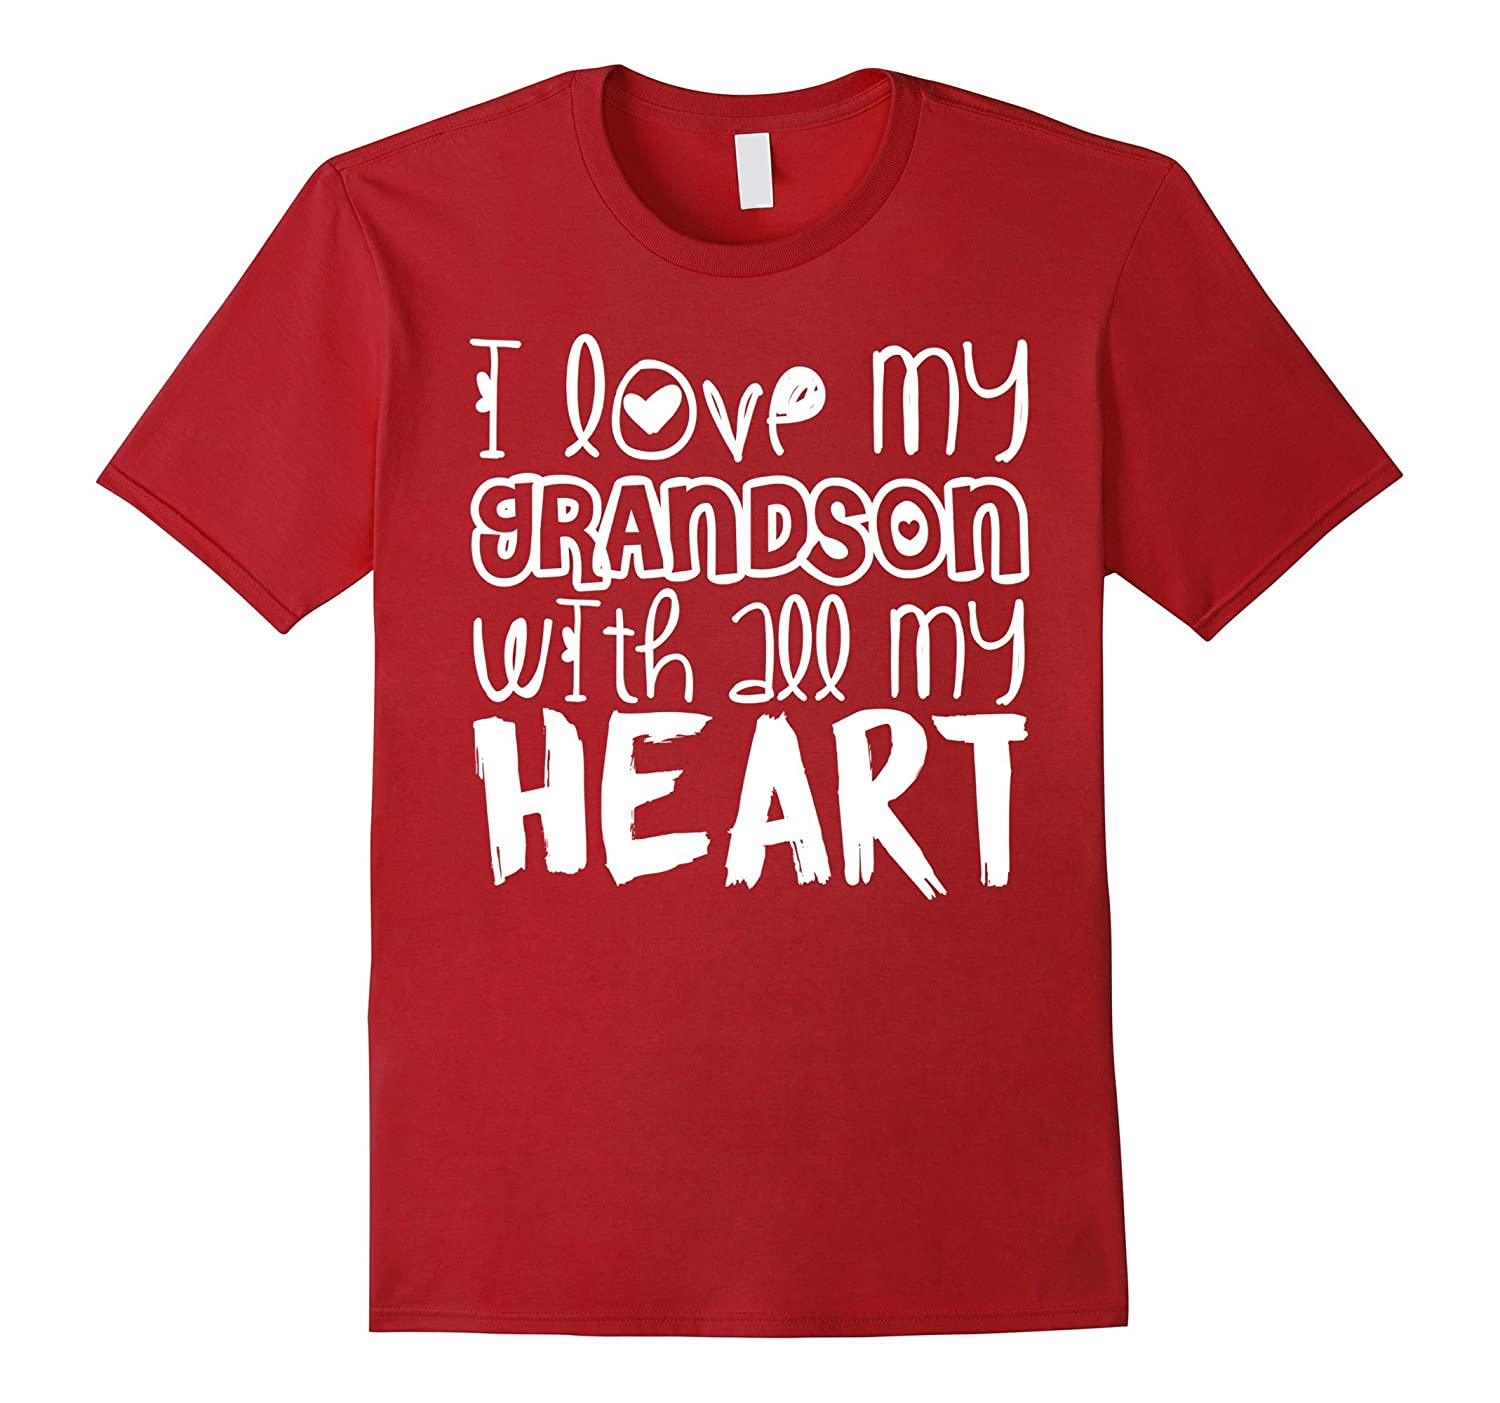 I love my Grandson with all my heart - Grandma love Shirts-TD